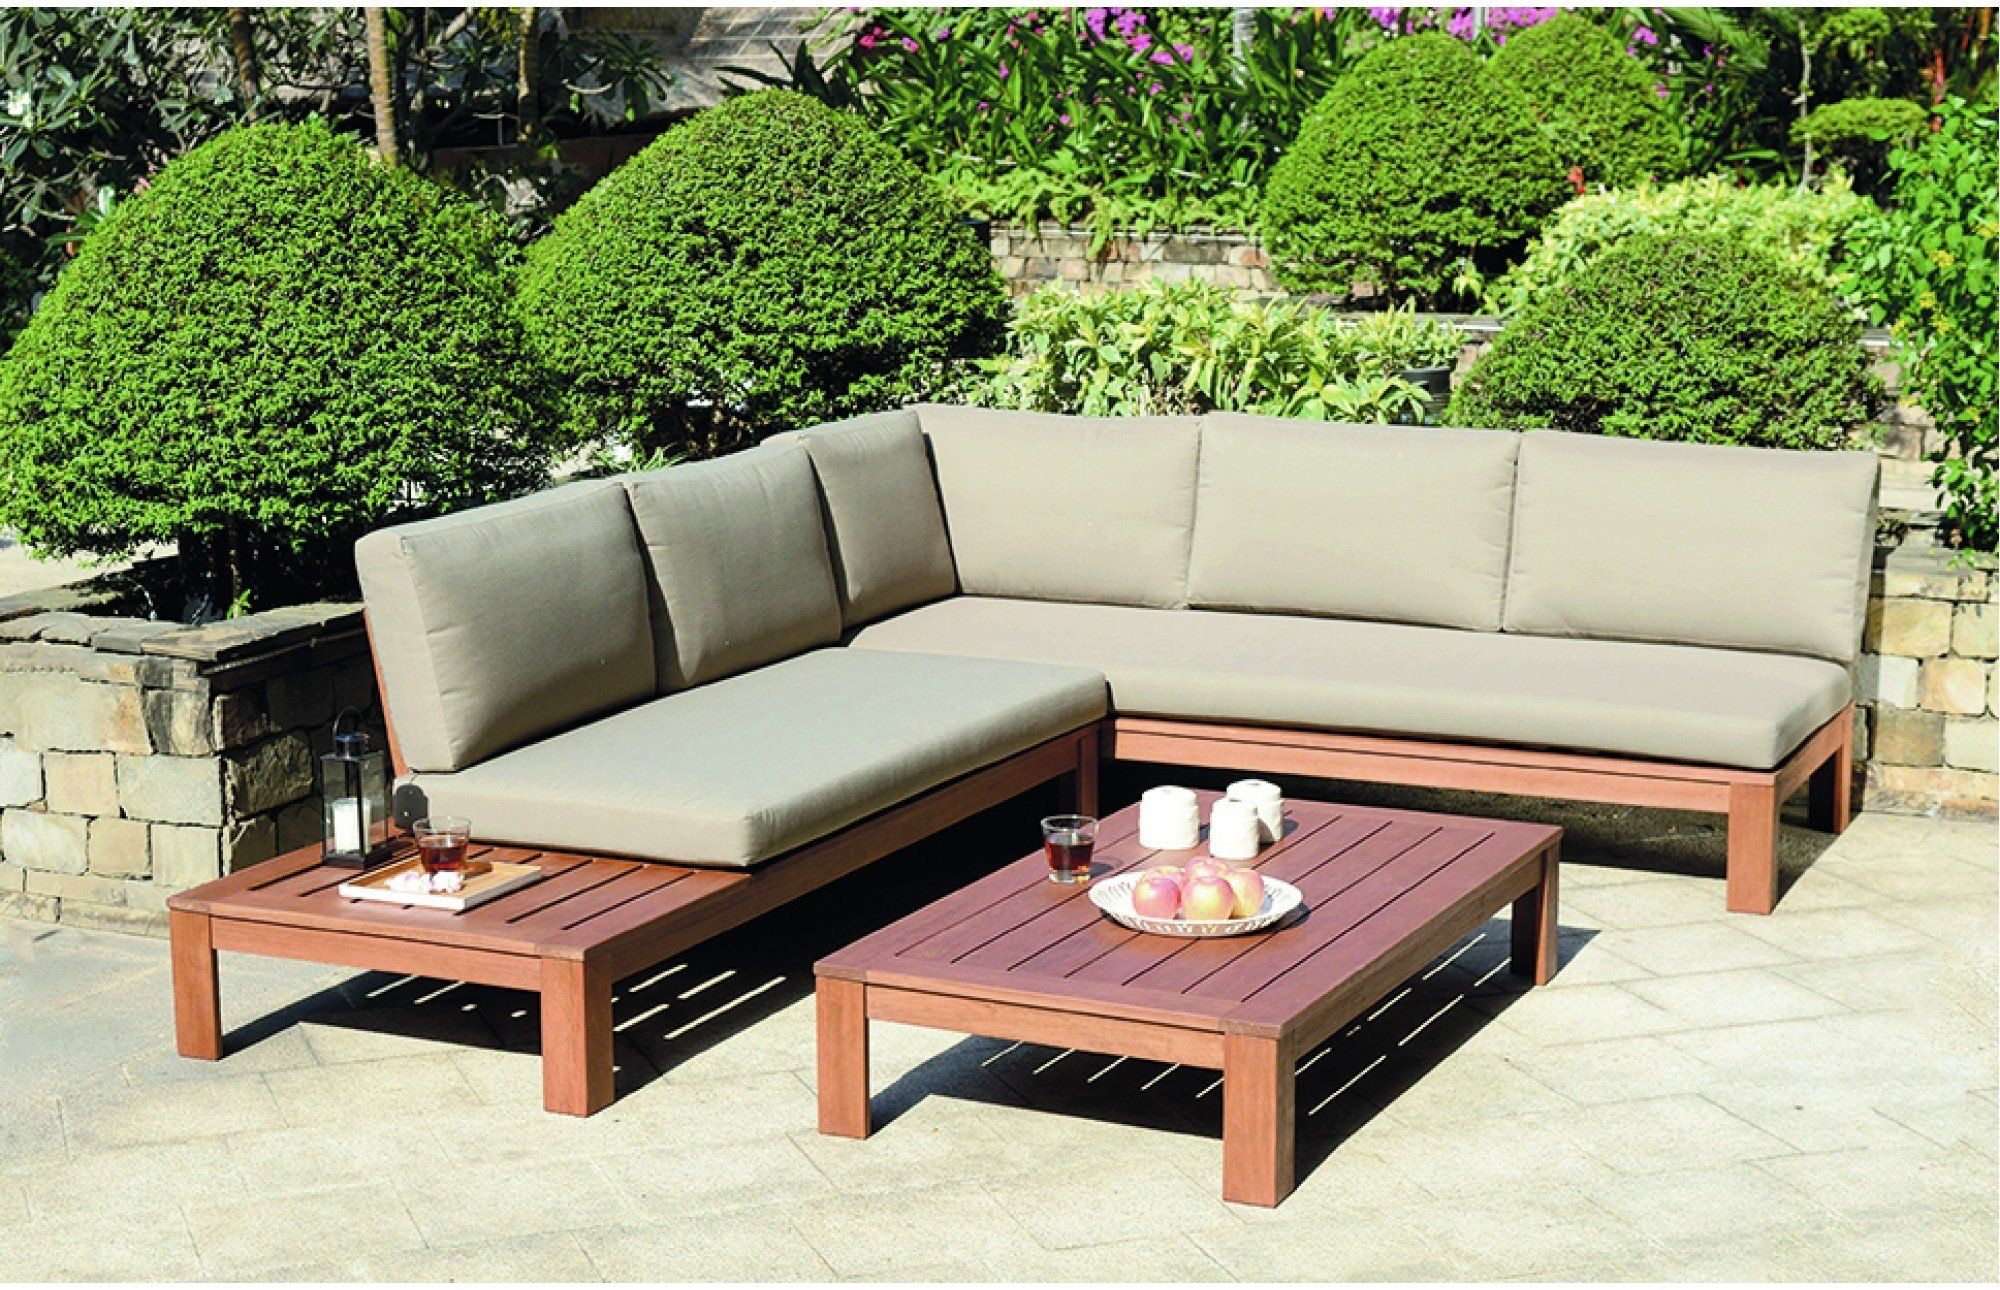 Browse our superb range of wooden garden lounge sets with free